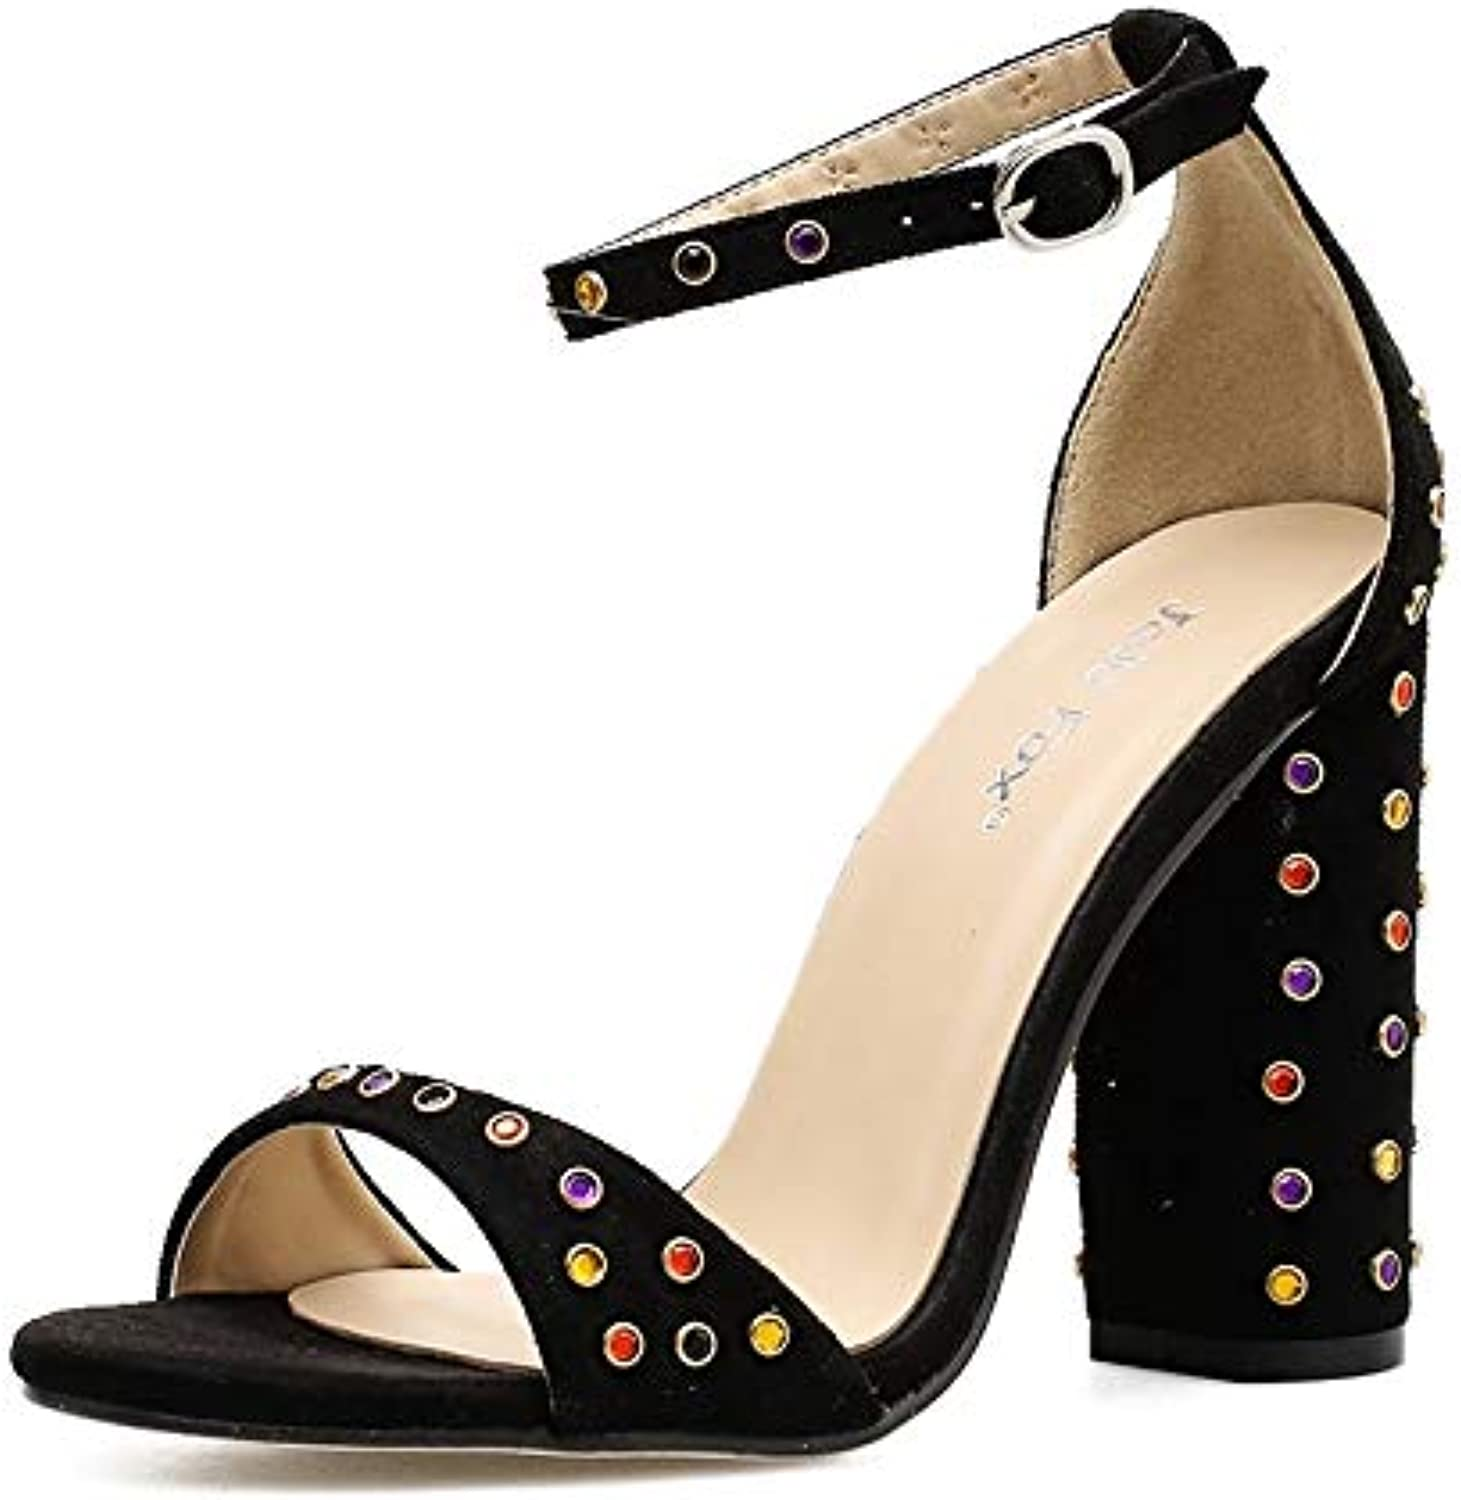 KCatsy Women's Square Heel Sandals Japanese Party High Heels with Rivets